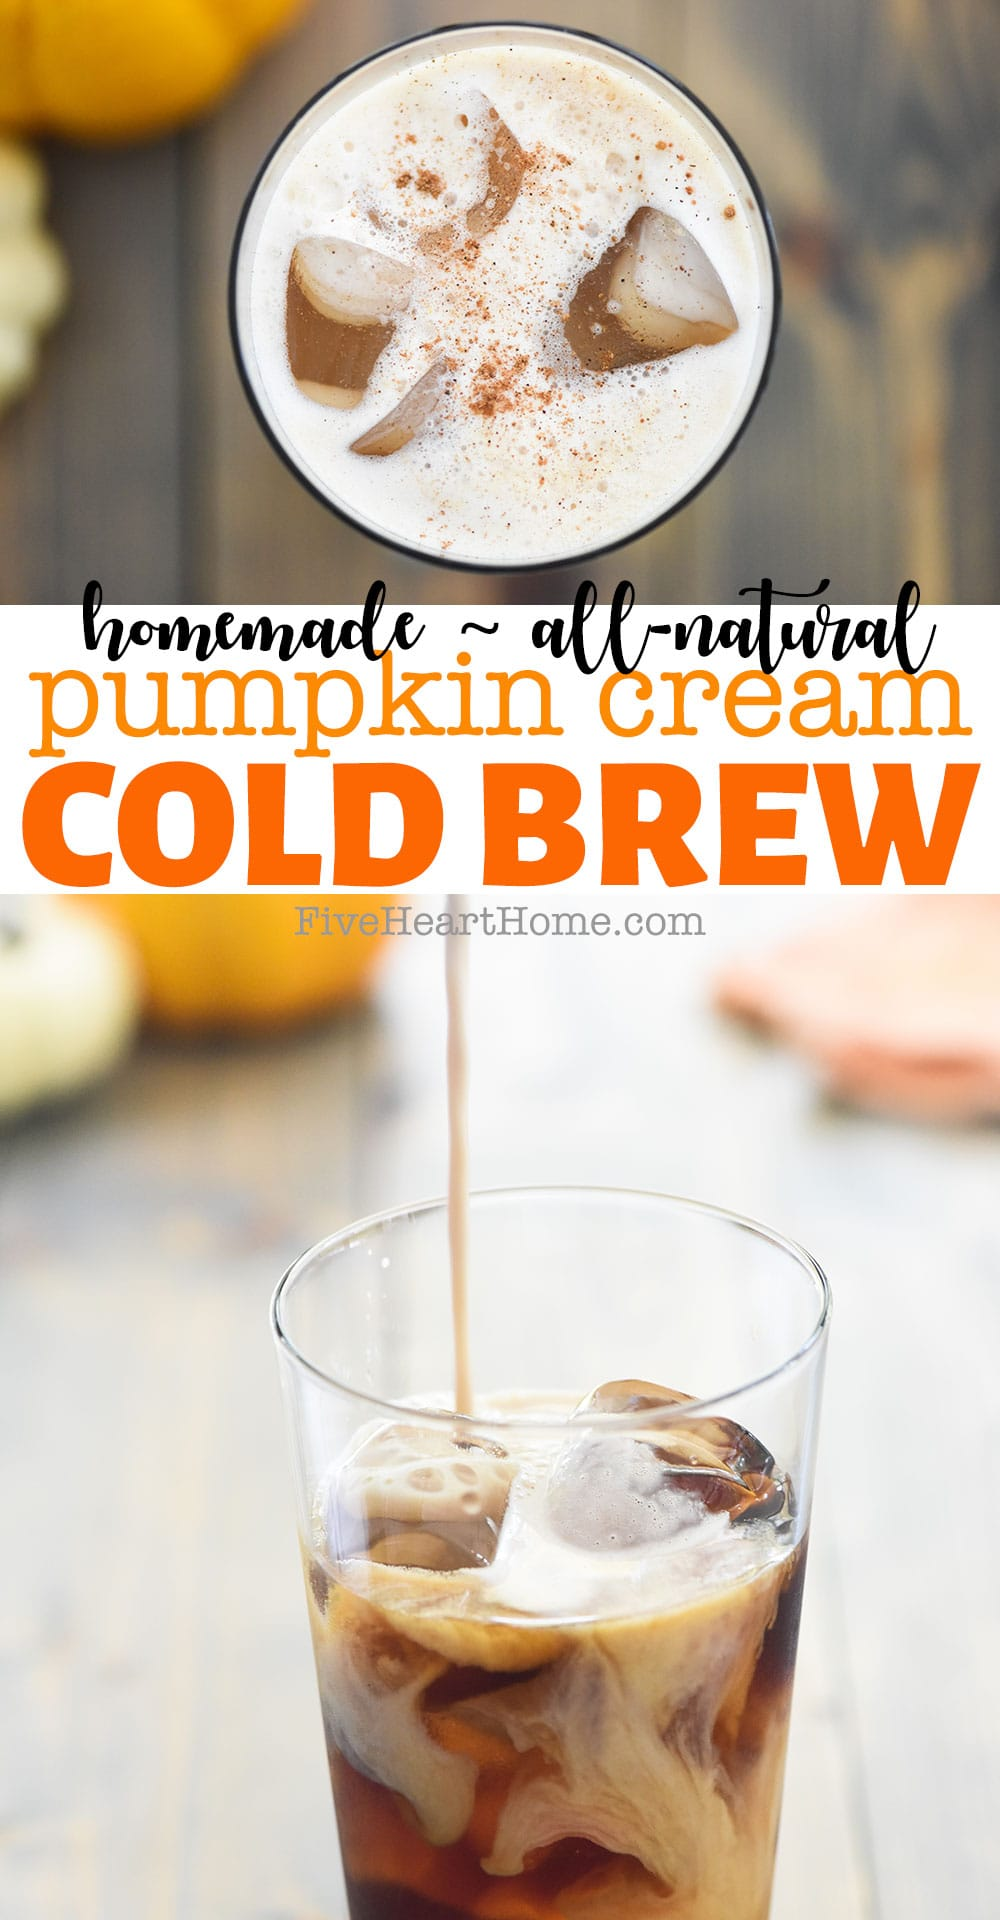 Pumpkin Cream Cold Brew ~ this fall spin on iced coffee is reminiscent of the popular drink from Starbucks, except this version is easy to make with natural ingredients including real pumpkin puree! | FiveHeartHome.com via @fivehearthome